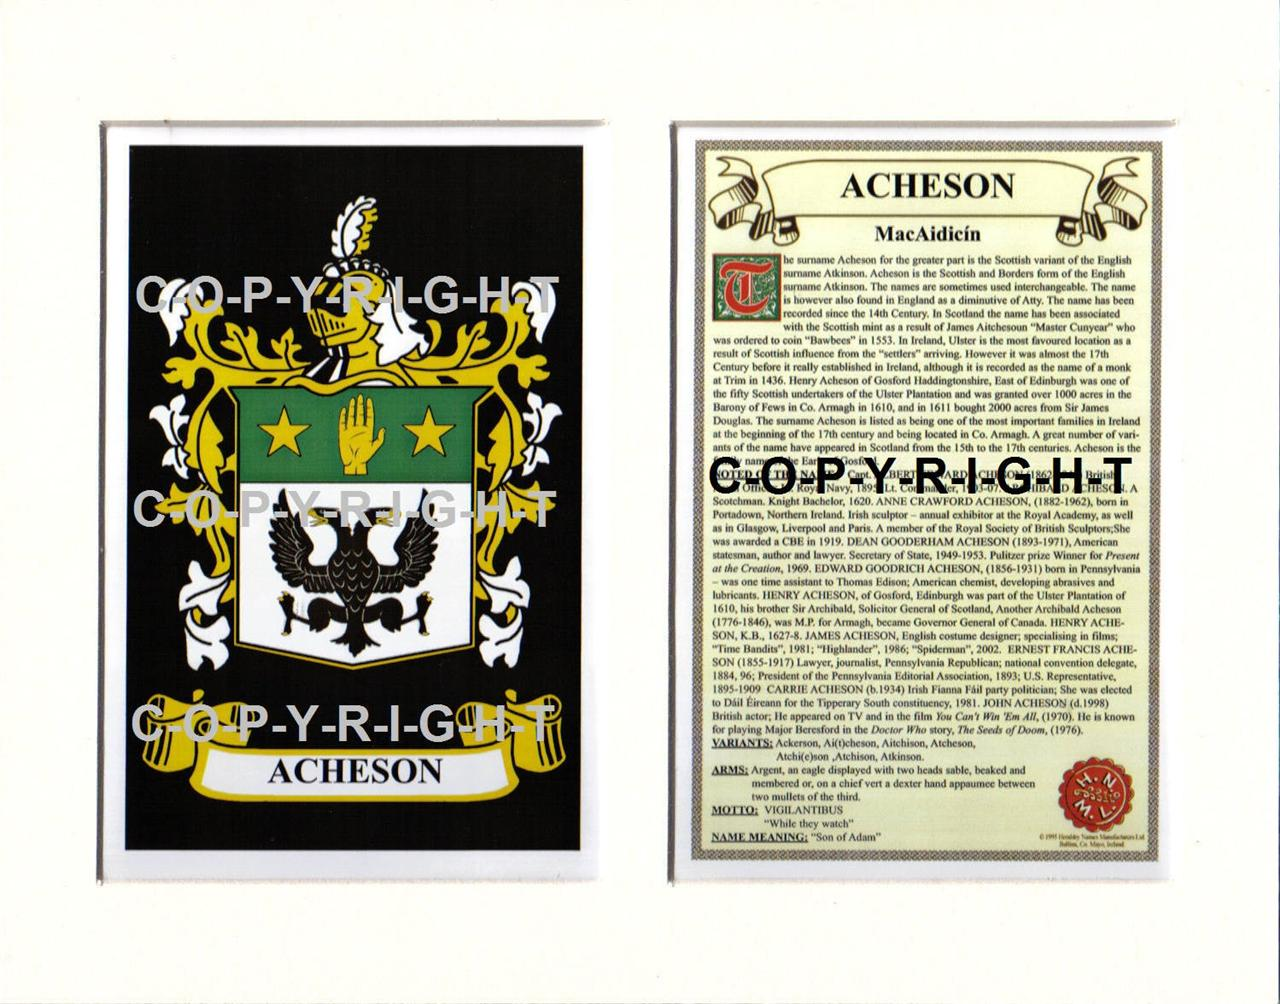 ACHESON-Family-Coat-of-Arms-Crest-History-Available-Mounted-or-Framed